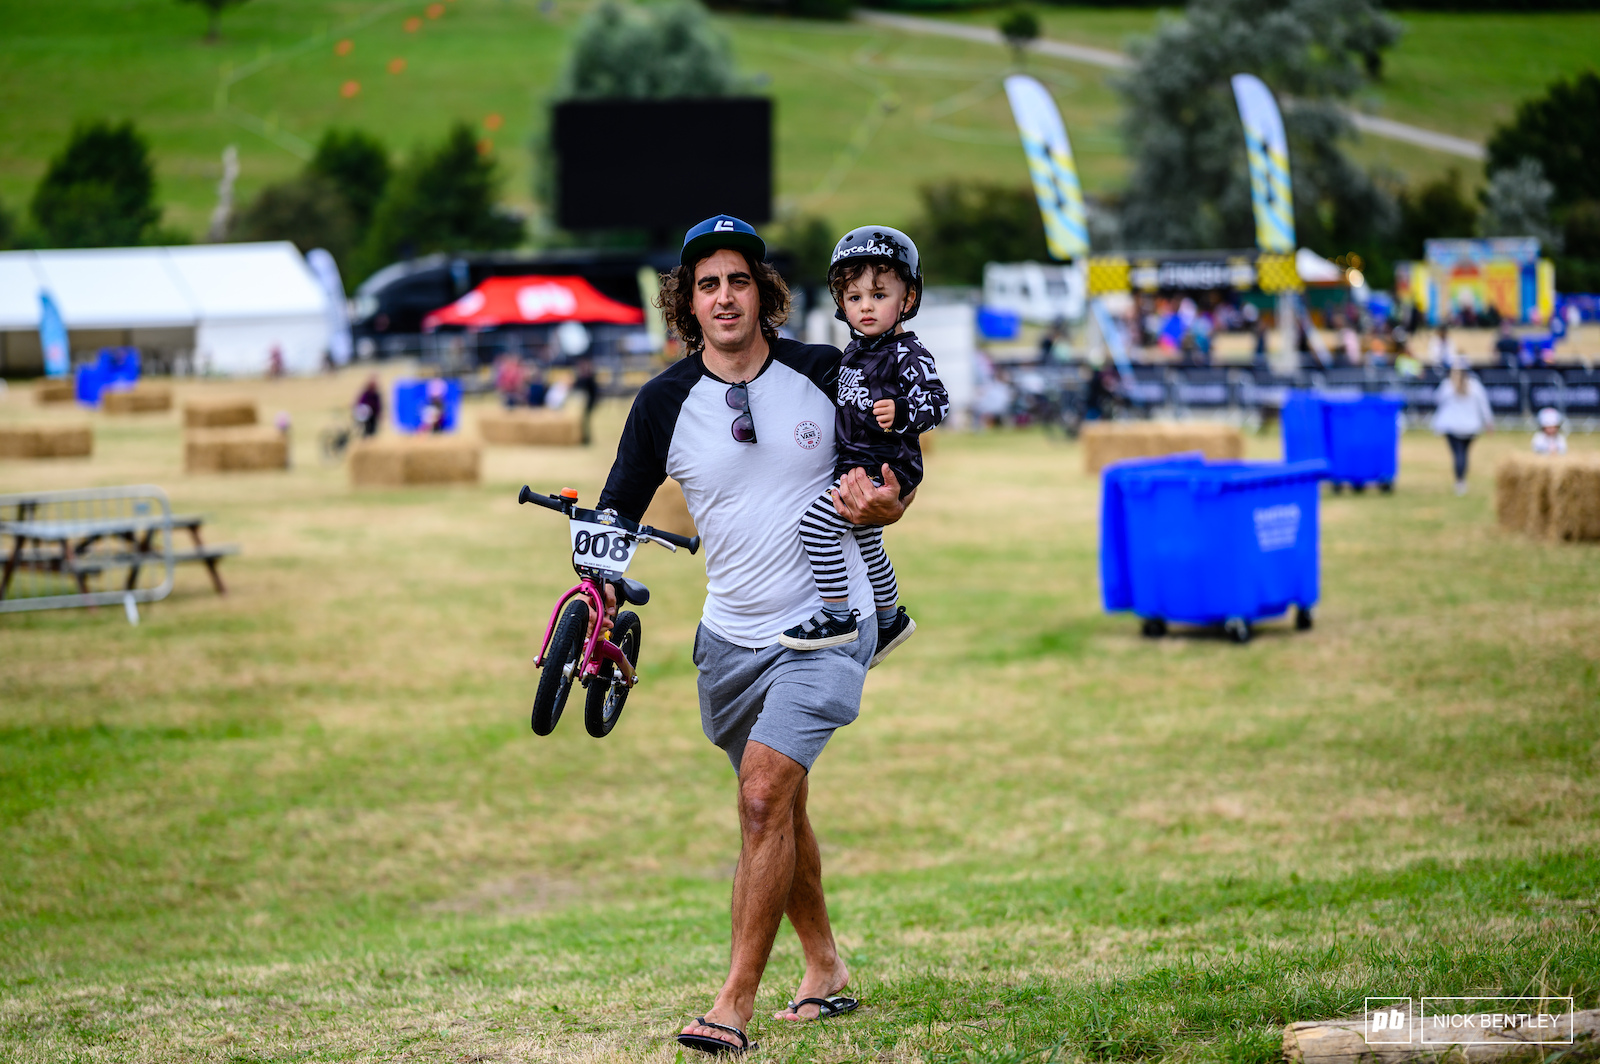 Families out racing together is what it s all about